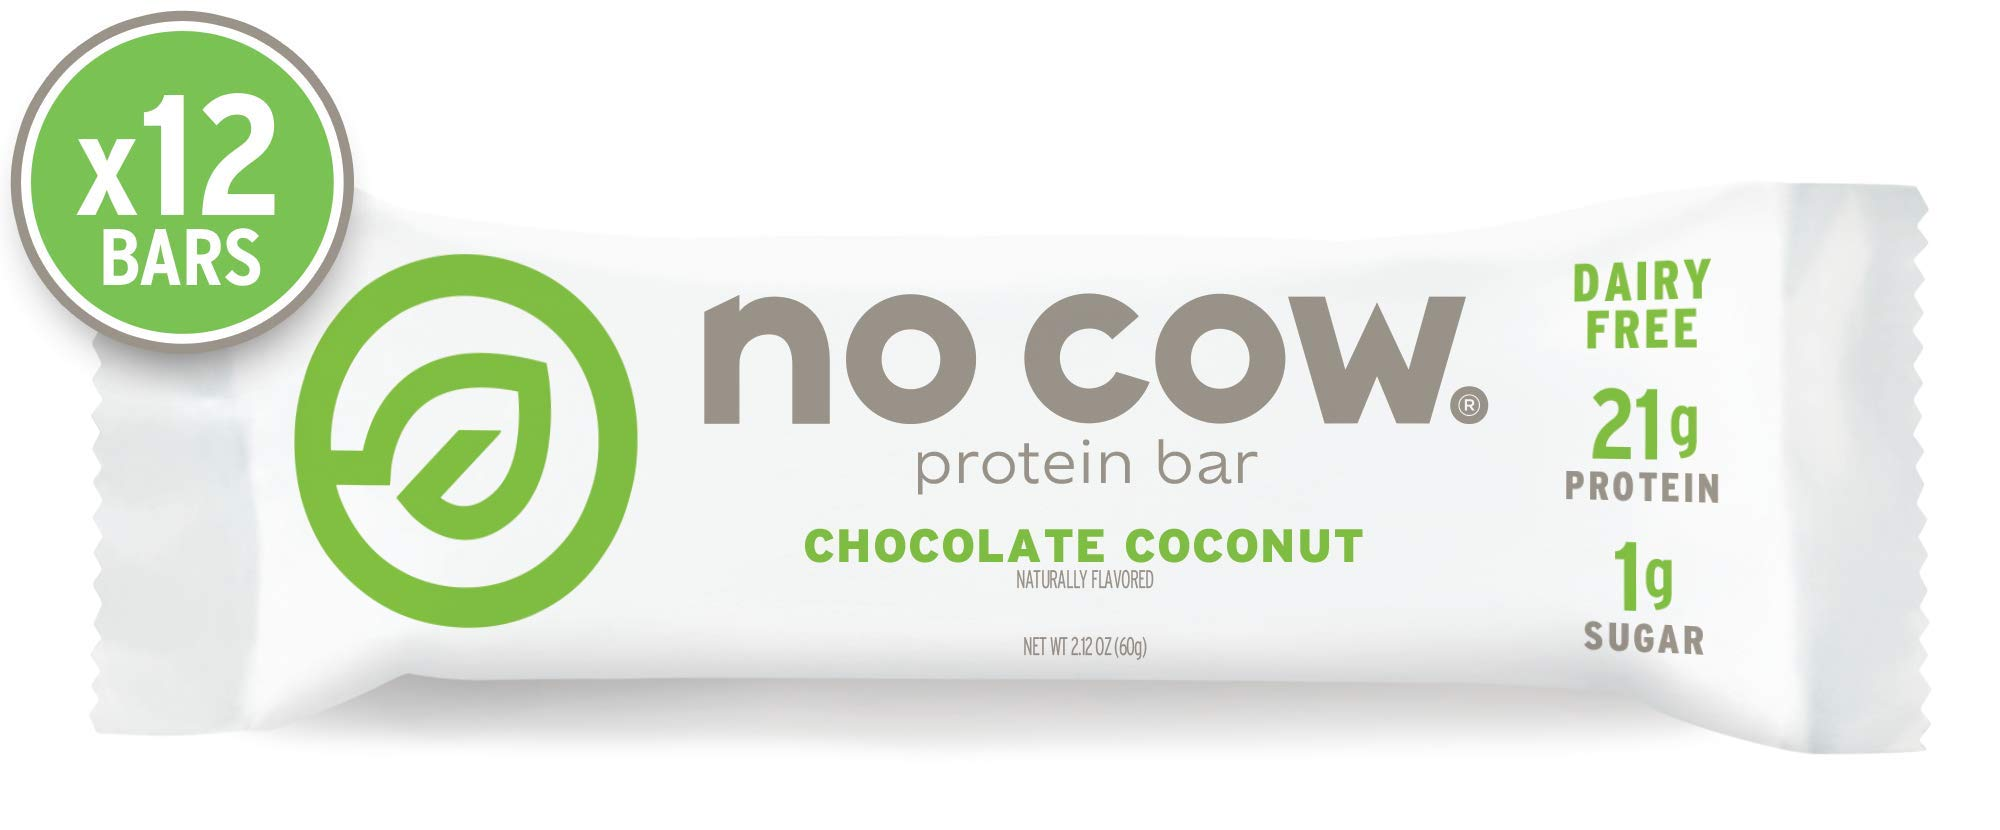 No Cow Protein Bar Chocolate Coconut, Plant Based Protein (21g), Keto Friendly, Low Sugar, Dairy Free, Gluten Free, Vegan, High Fiber, Non-GMO, 12 Count by No Cow